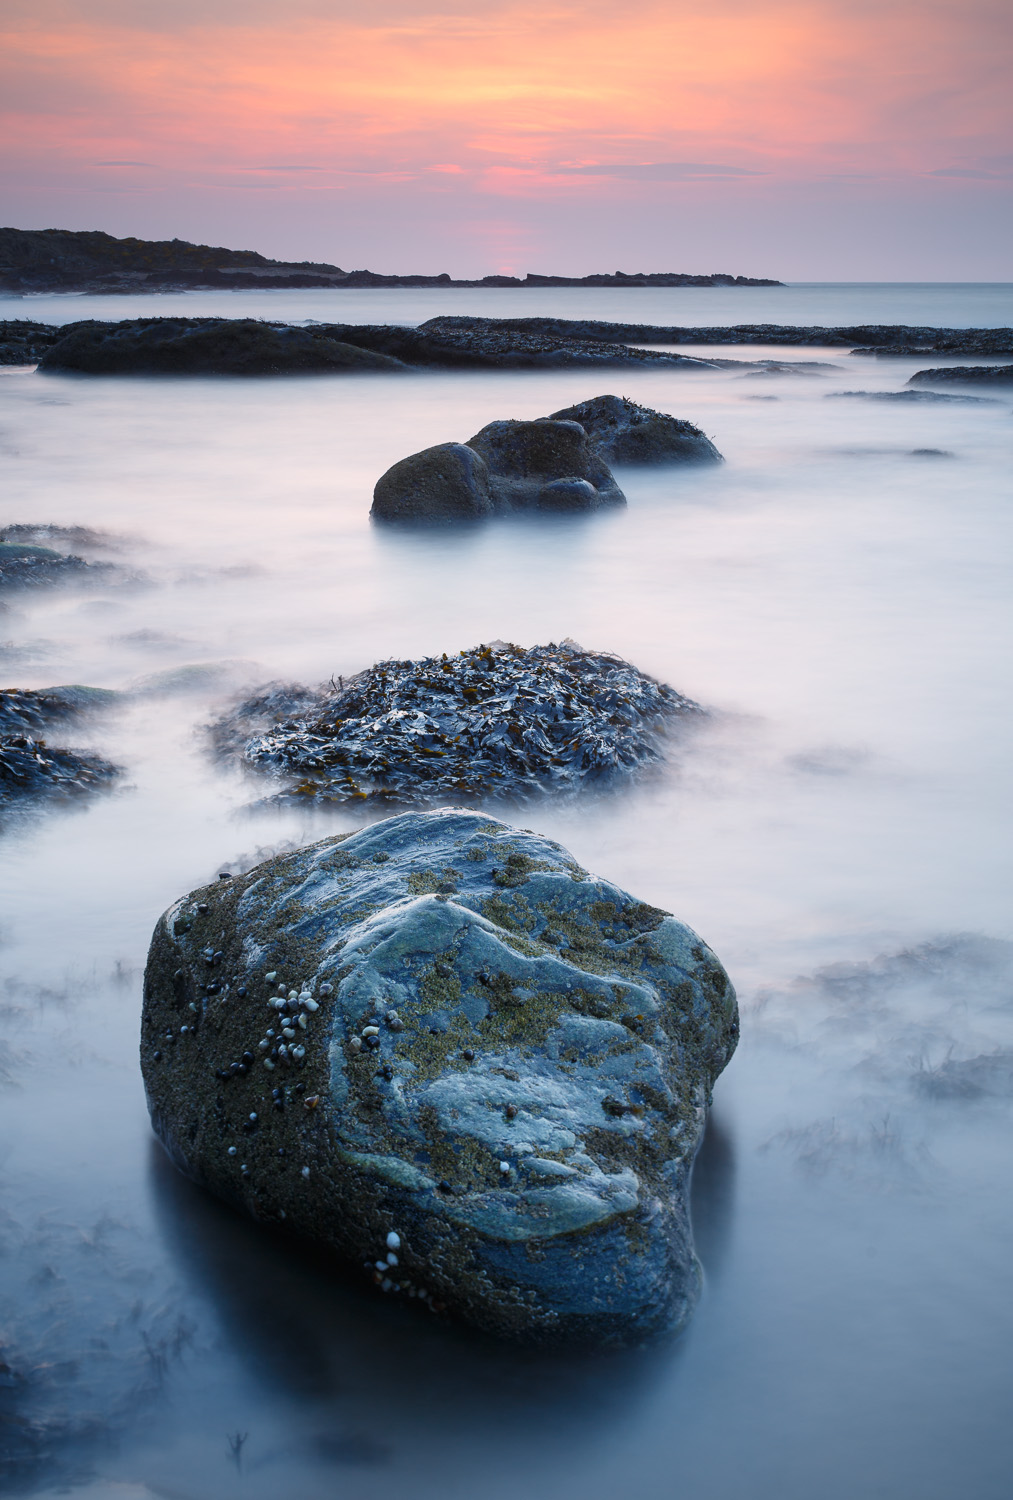 Cove Bay rocks at sunset